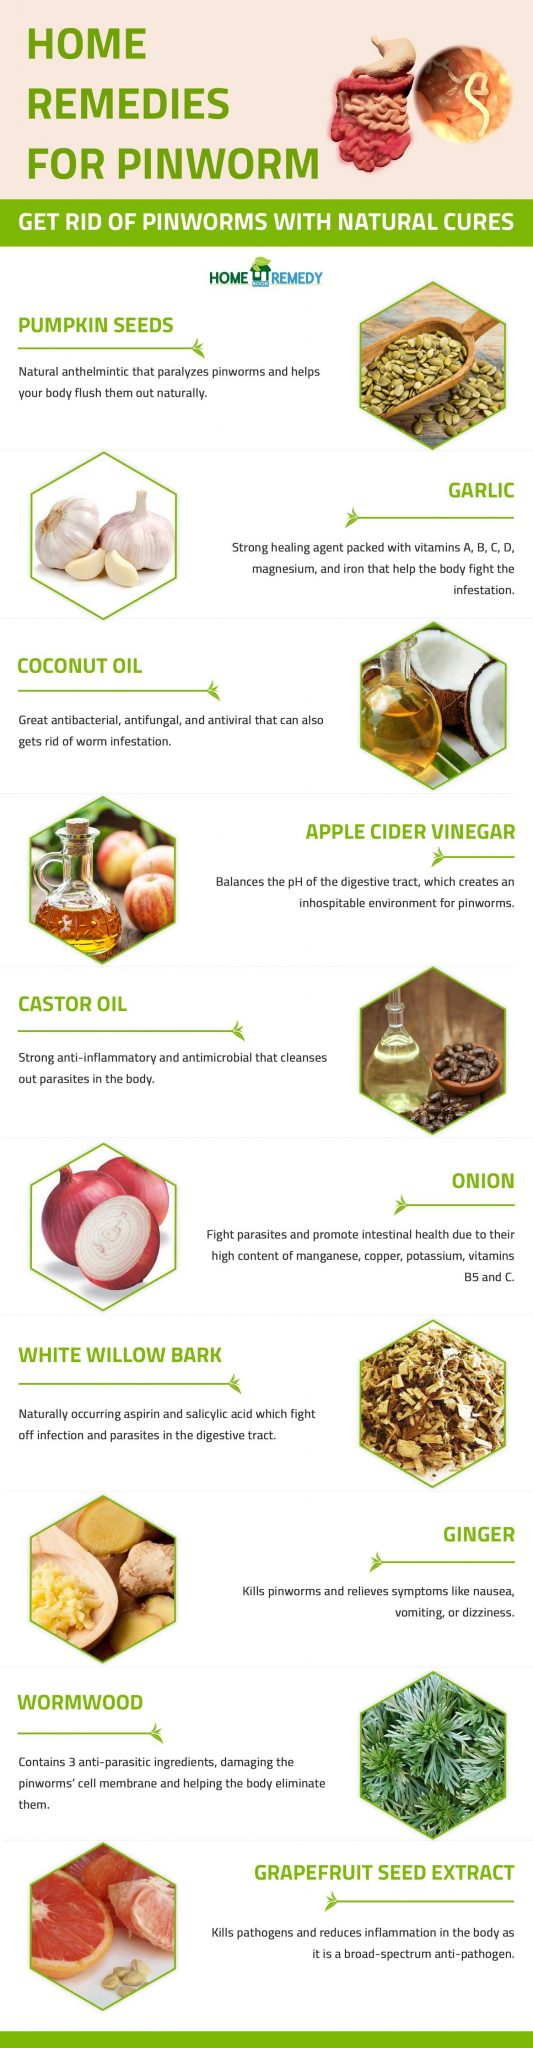 12 Home Remedies for Pinworms [Infographic] - Home Remedy Book